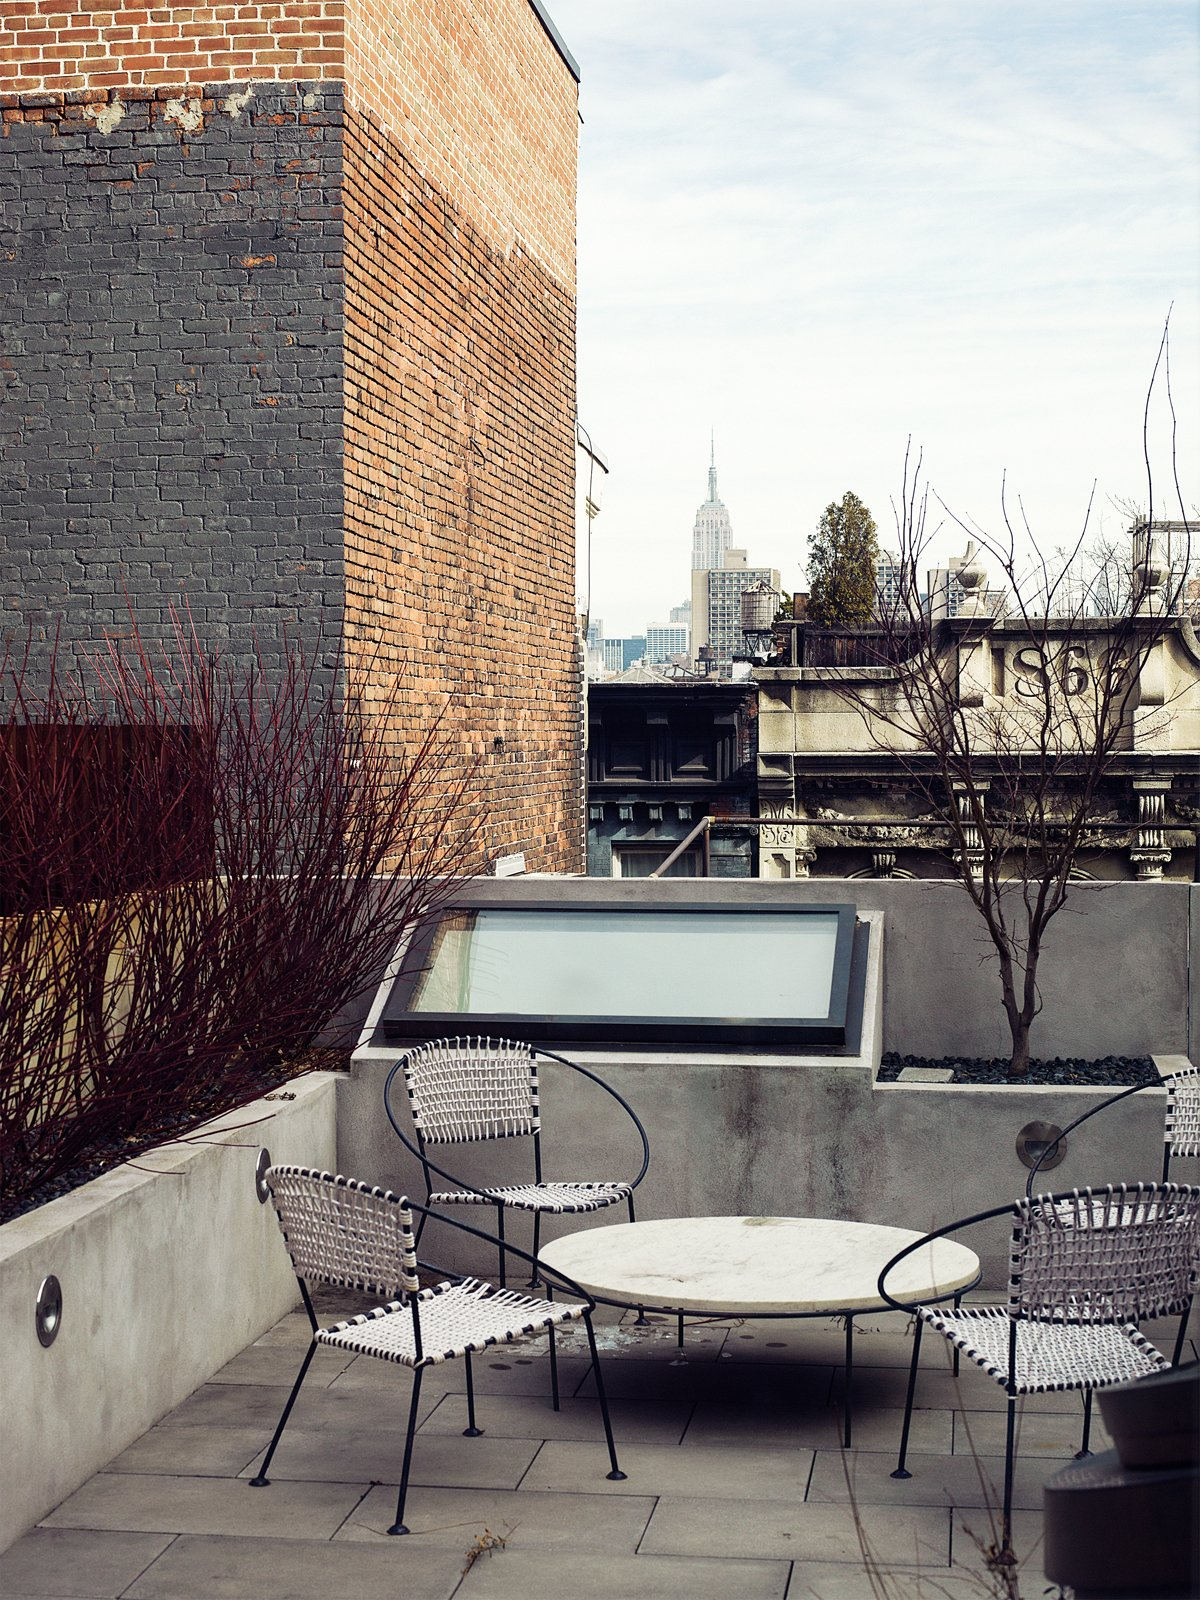 #outdoor #design #modern #outside #indooroutdoorliving #roofterrace #exterior #tribeca #loft #pulltab #skylit #lightwells #terrace #marcovitz #geiger #table #chairs #paulmccobb #vintage #concrete #newyork #renovation #architecture   Photo by João Canziani  Outdoor by Dwell